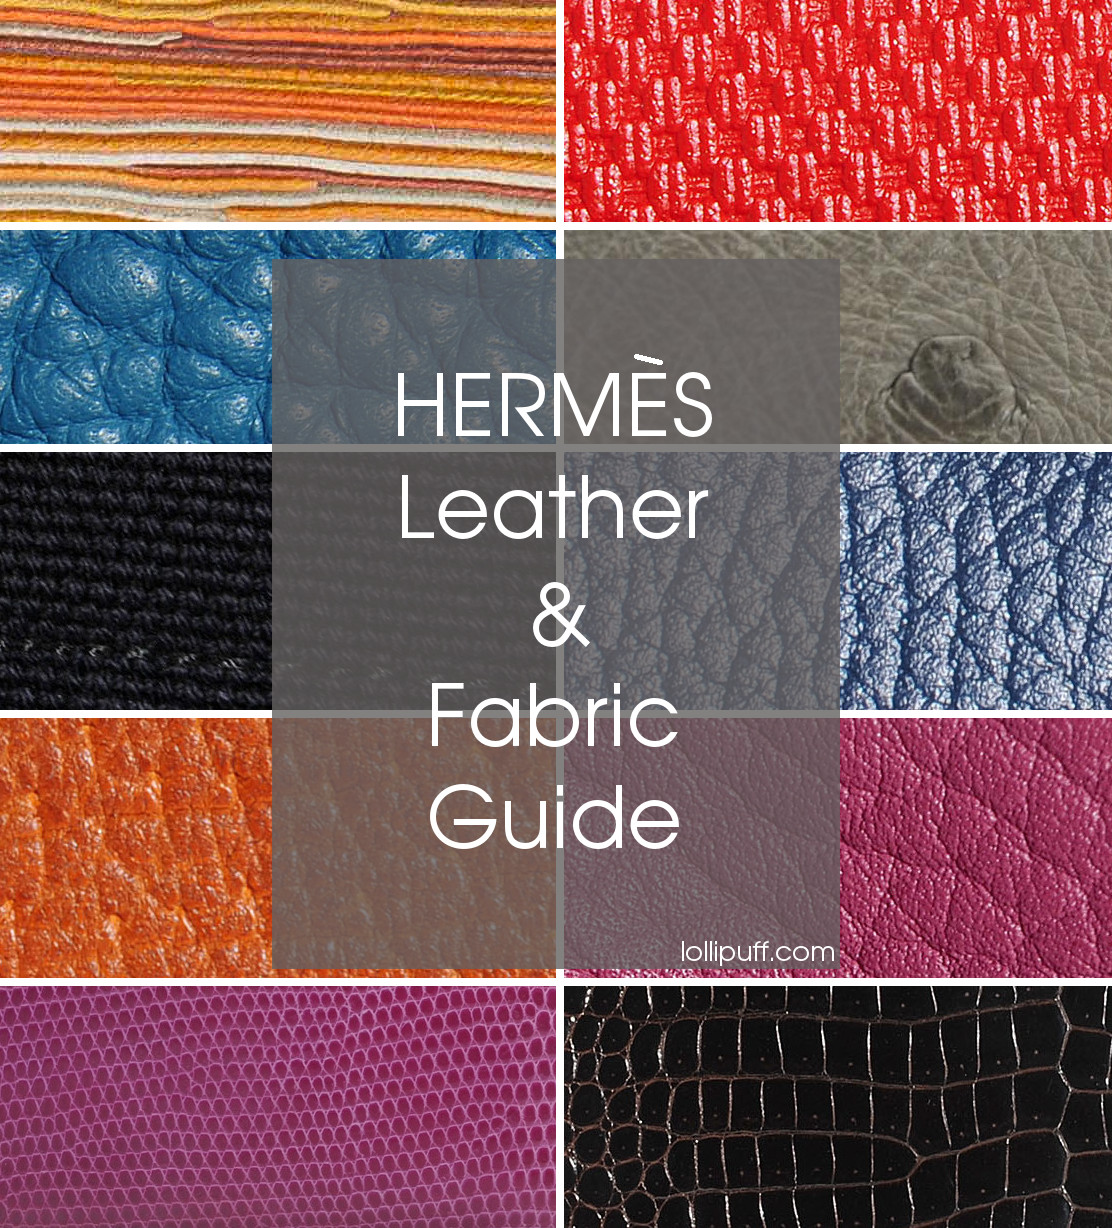 h hermes purses - Hermes Leather and Fabric Look-Up Guide | Lollipuff